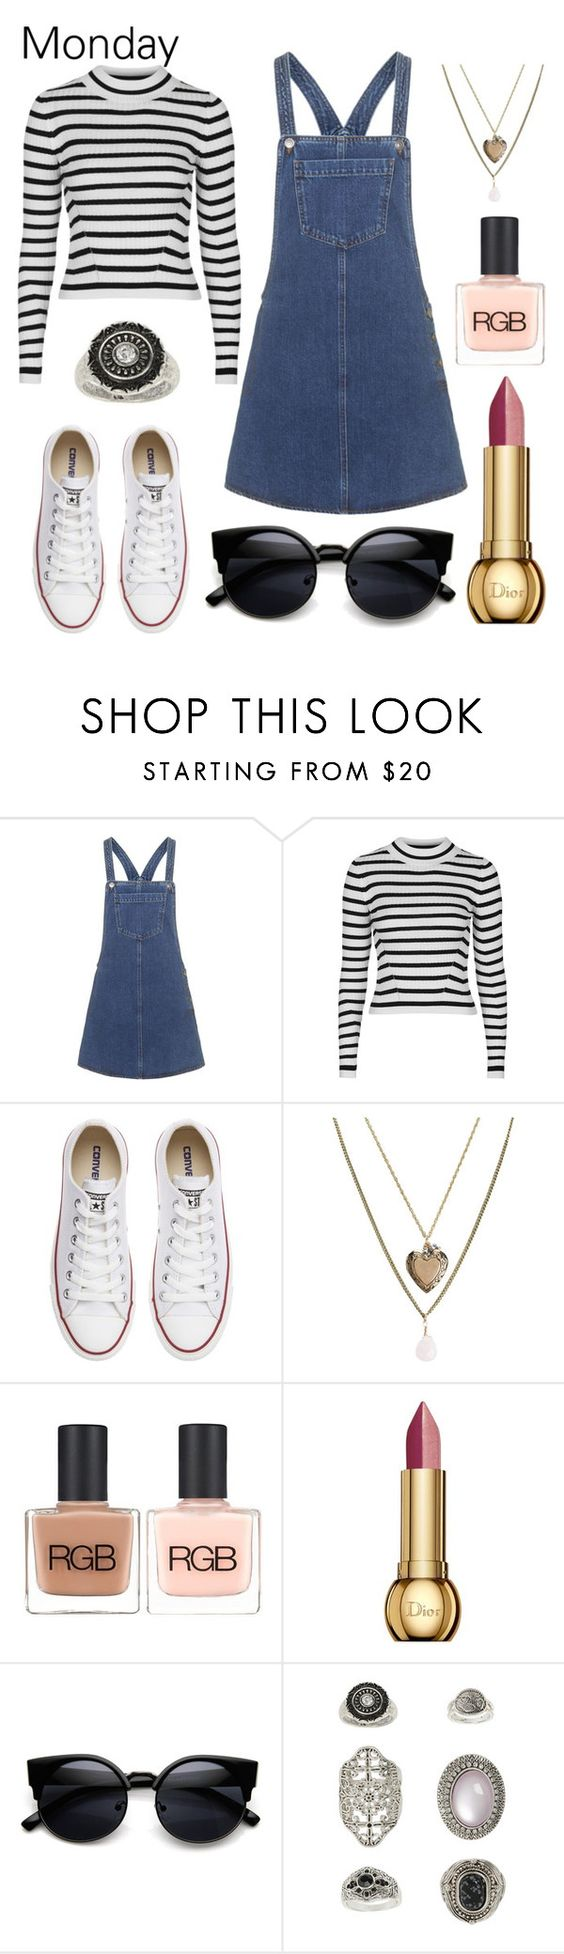 """""""OOTD - Sunday, January 31st"""" by musicpandas on Polyvore featuring Topshop, Converse, Aéropostale, RGB, Christian Dior, women's clothing, women, female, woman and misses"""